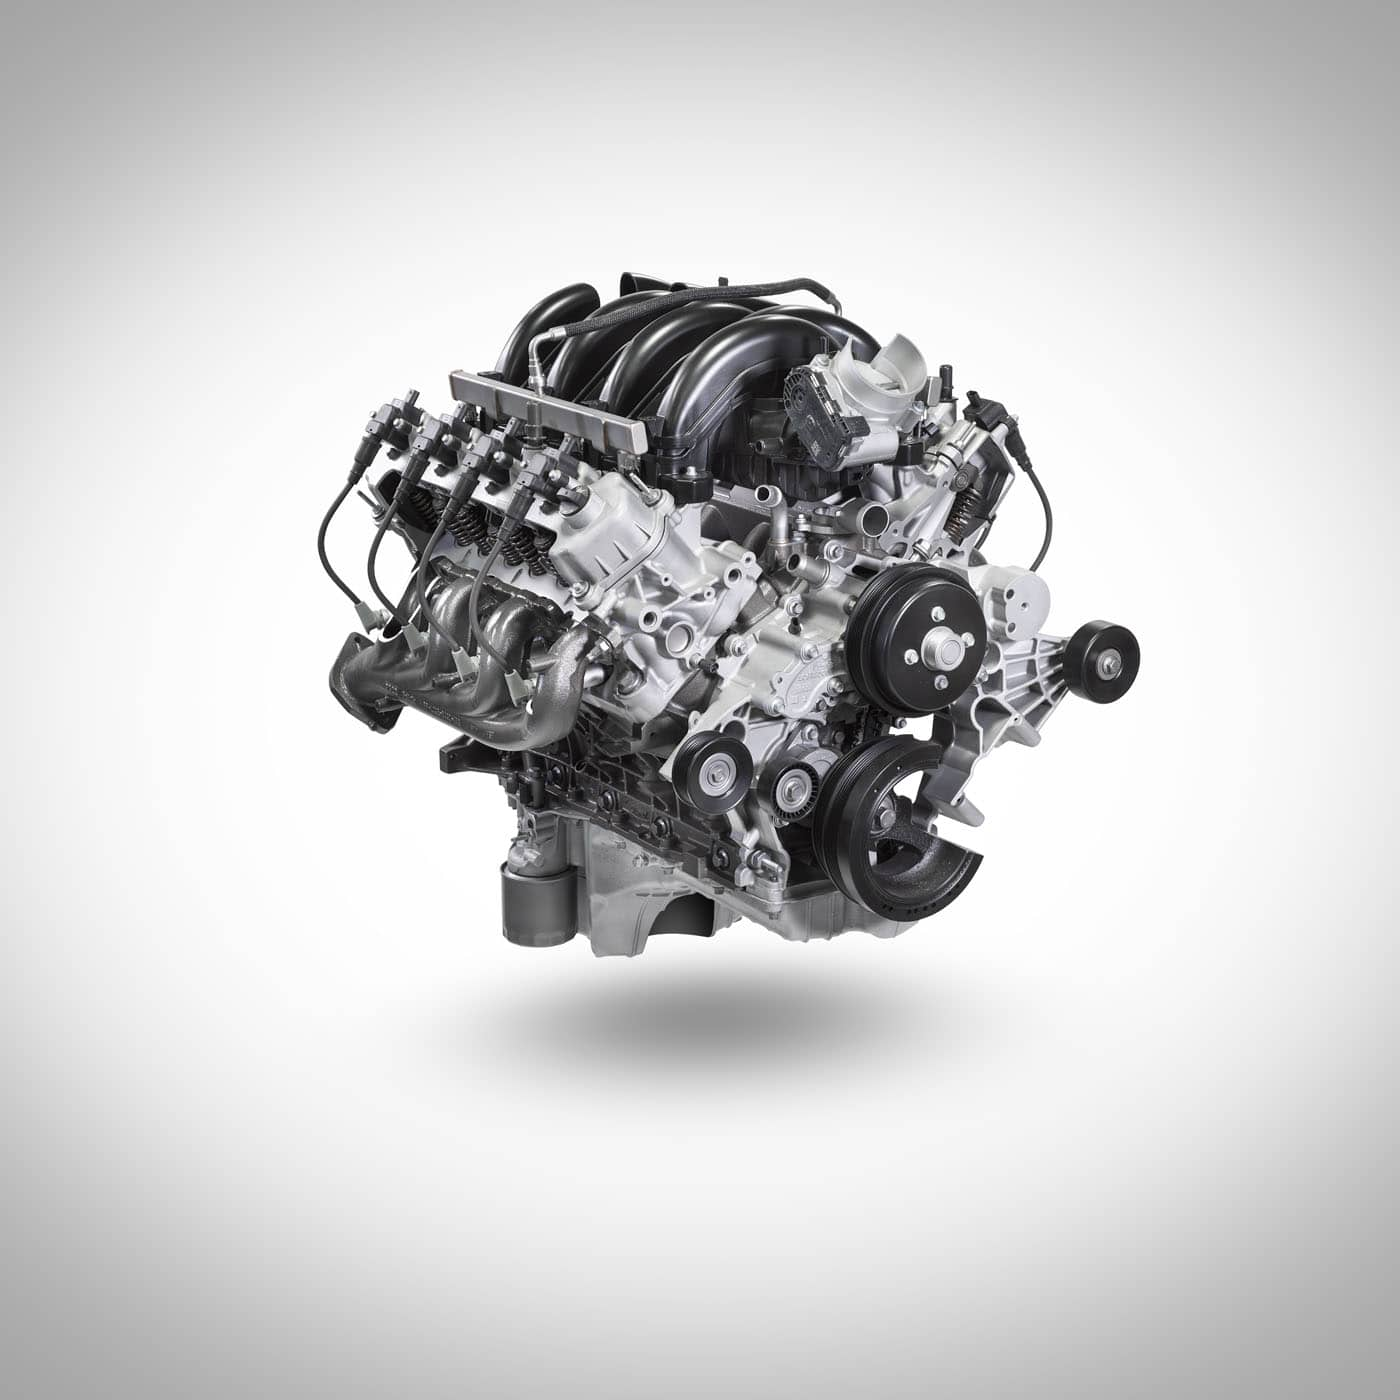 Ford Super Duty 7.3L V8 Gas Engine